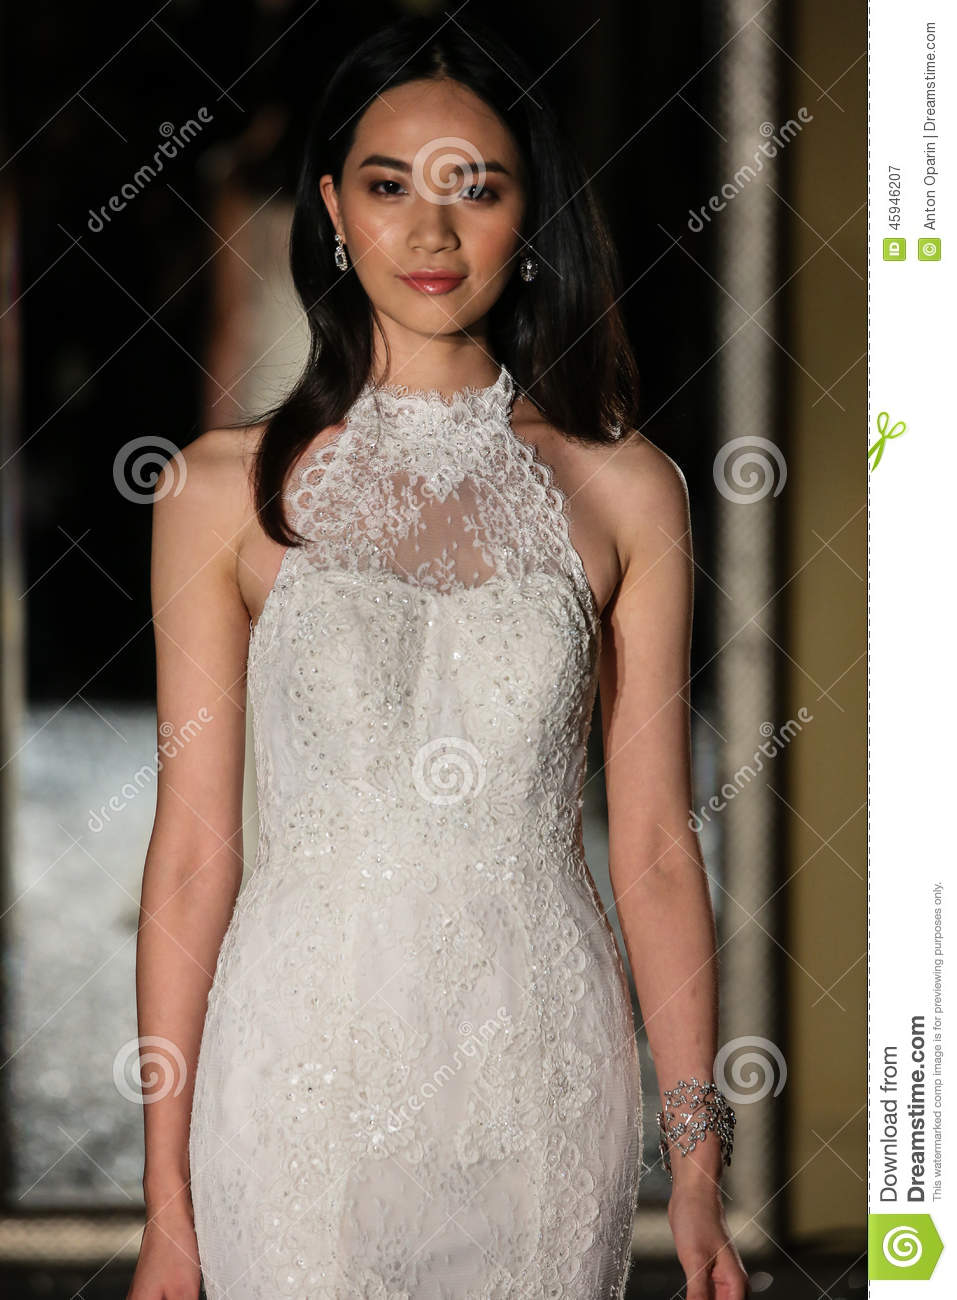 NEW YORK, NY - OCTOBER 09: A model walks the runway wearing Oleg Cassini Fall 2015 Bridal collection